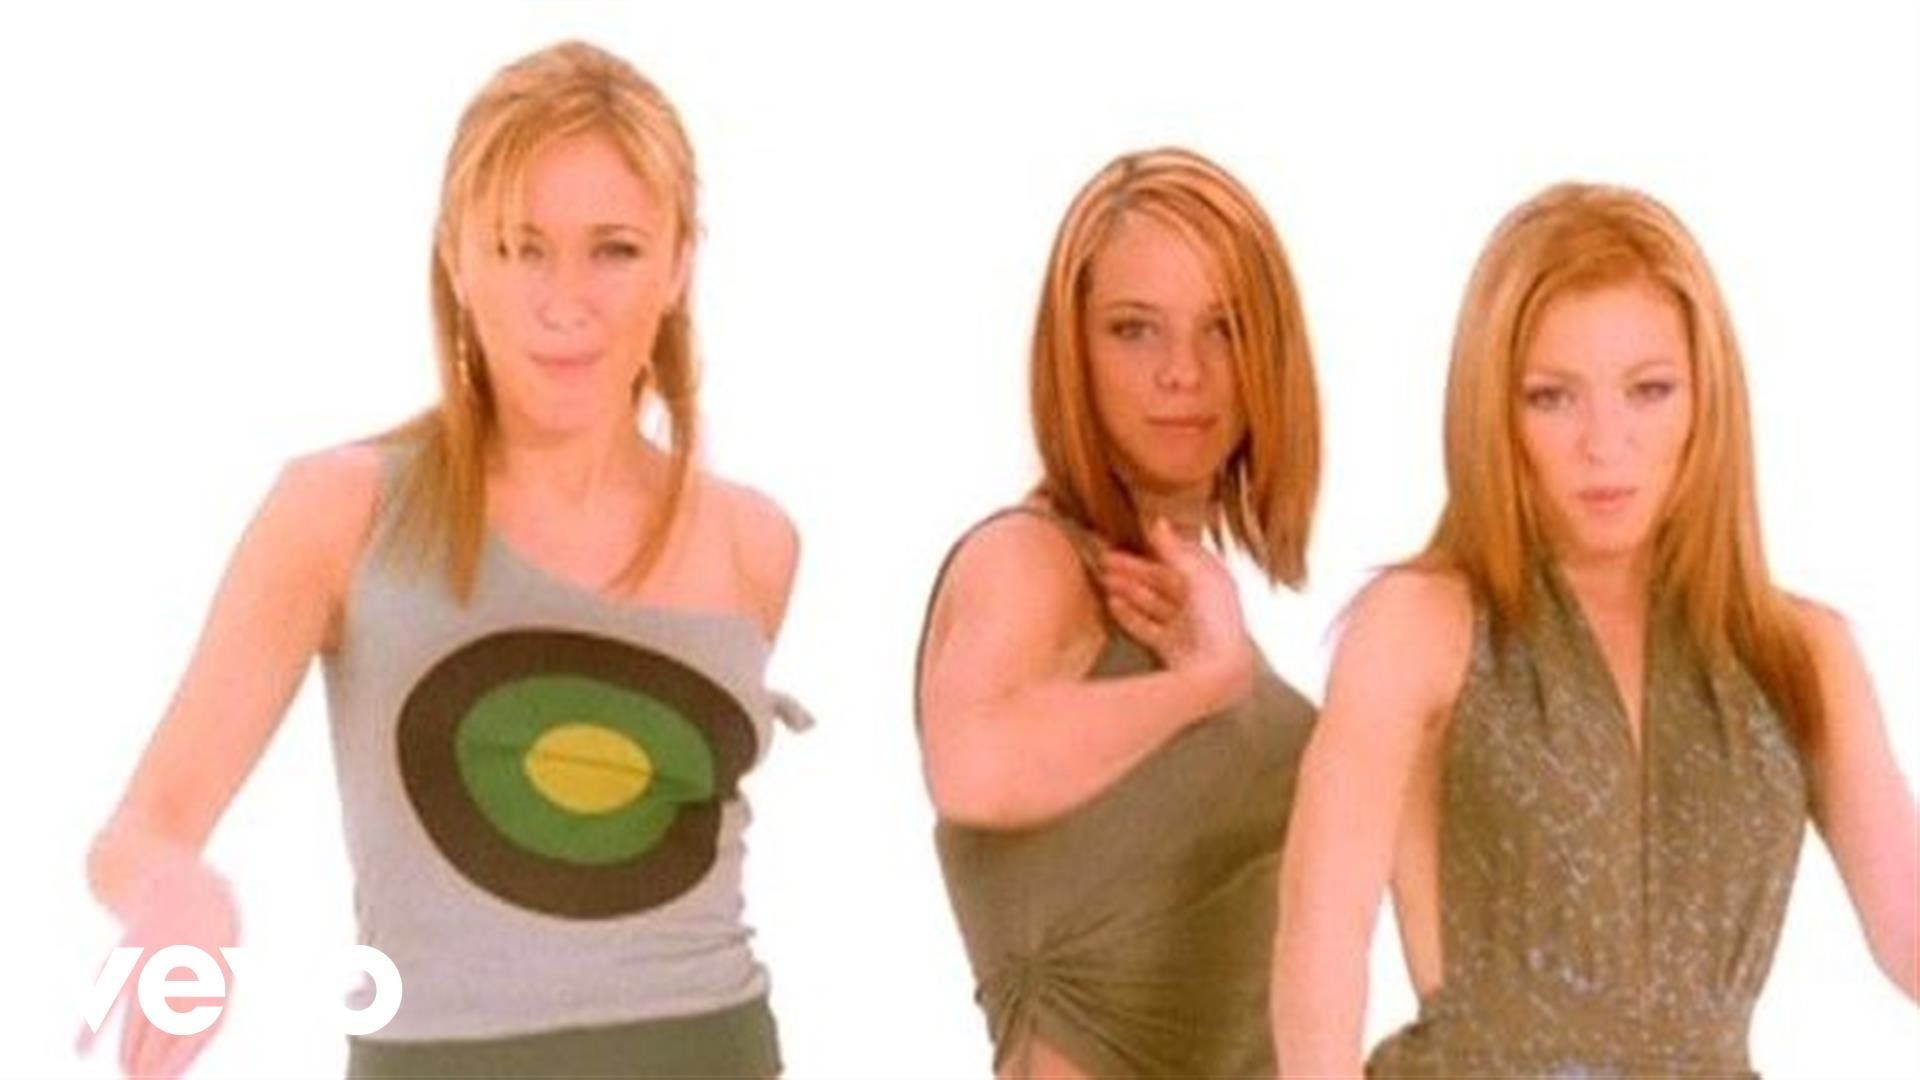 Atomic Kitten Whole Again Atomic Kitten Youtube Videos Music Music Videos